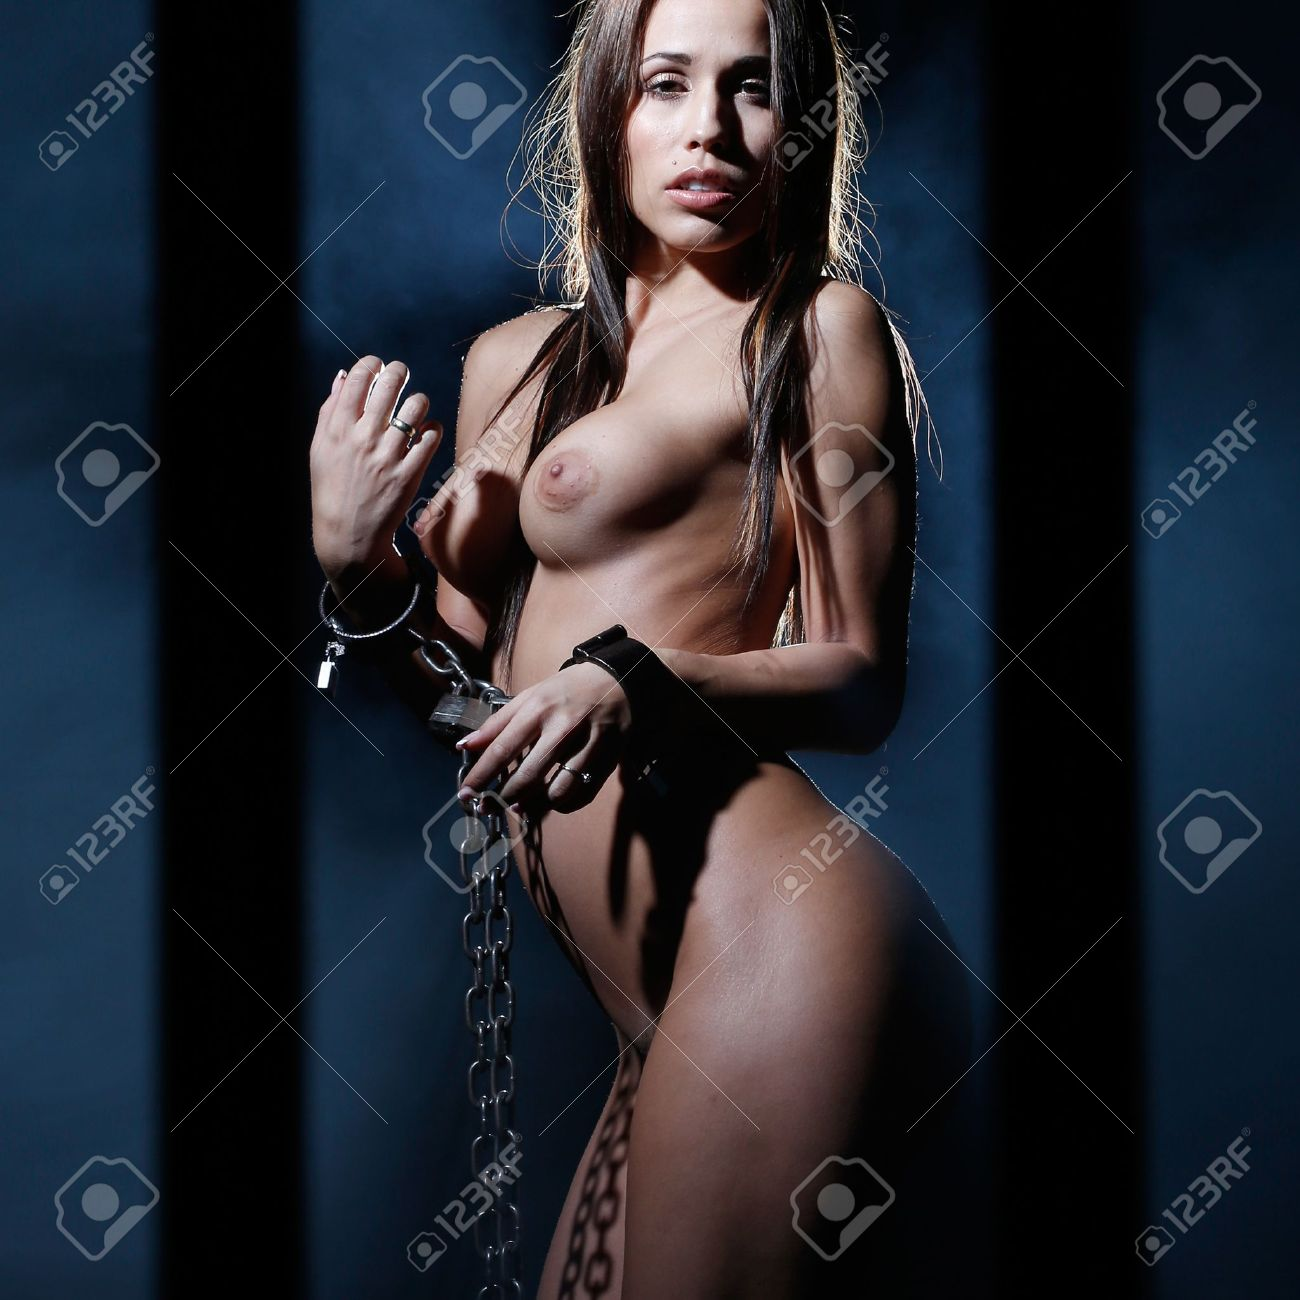 Bondage behind bars